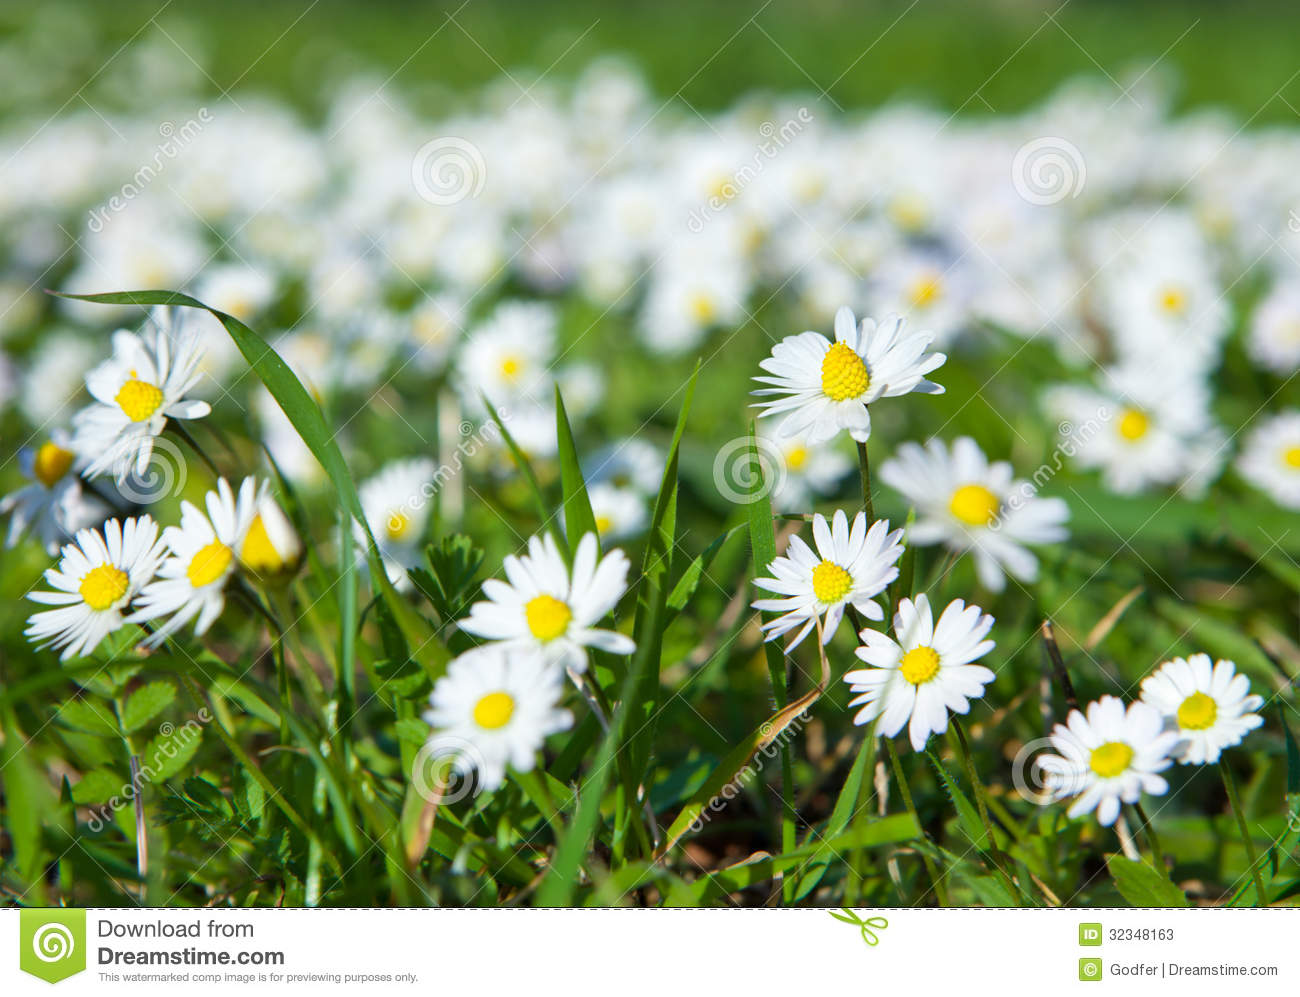 Daisies lawn of daisy flowers stock image image of blossom sunny download daisies lawn of daisy flowers stock image image of blossom sunny izmirmasajfo